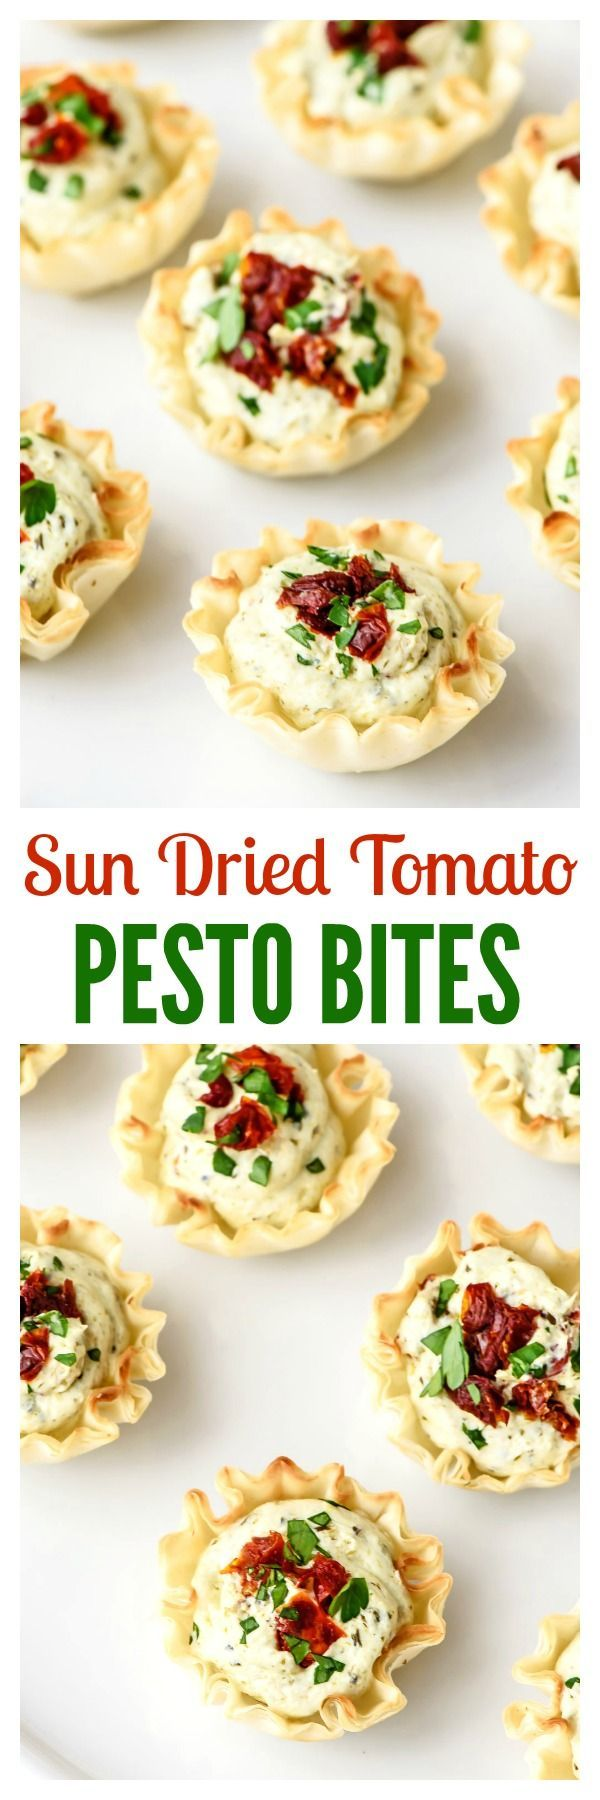 These easy Sun Dried Tomato Pesto Bites are the perfect Christmas appetizer. A few store-bought shortcuts make them quick and easy, everyone adores them, and they are even red and green!